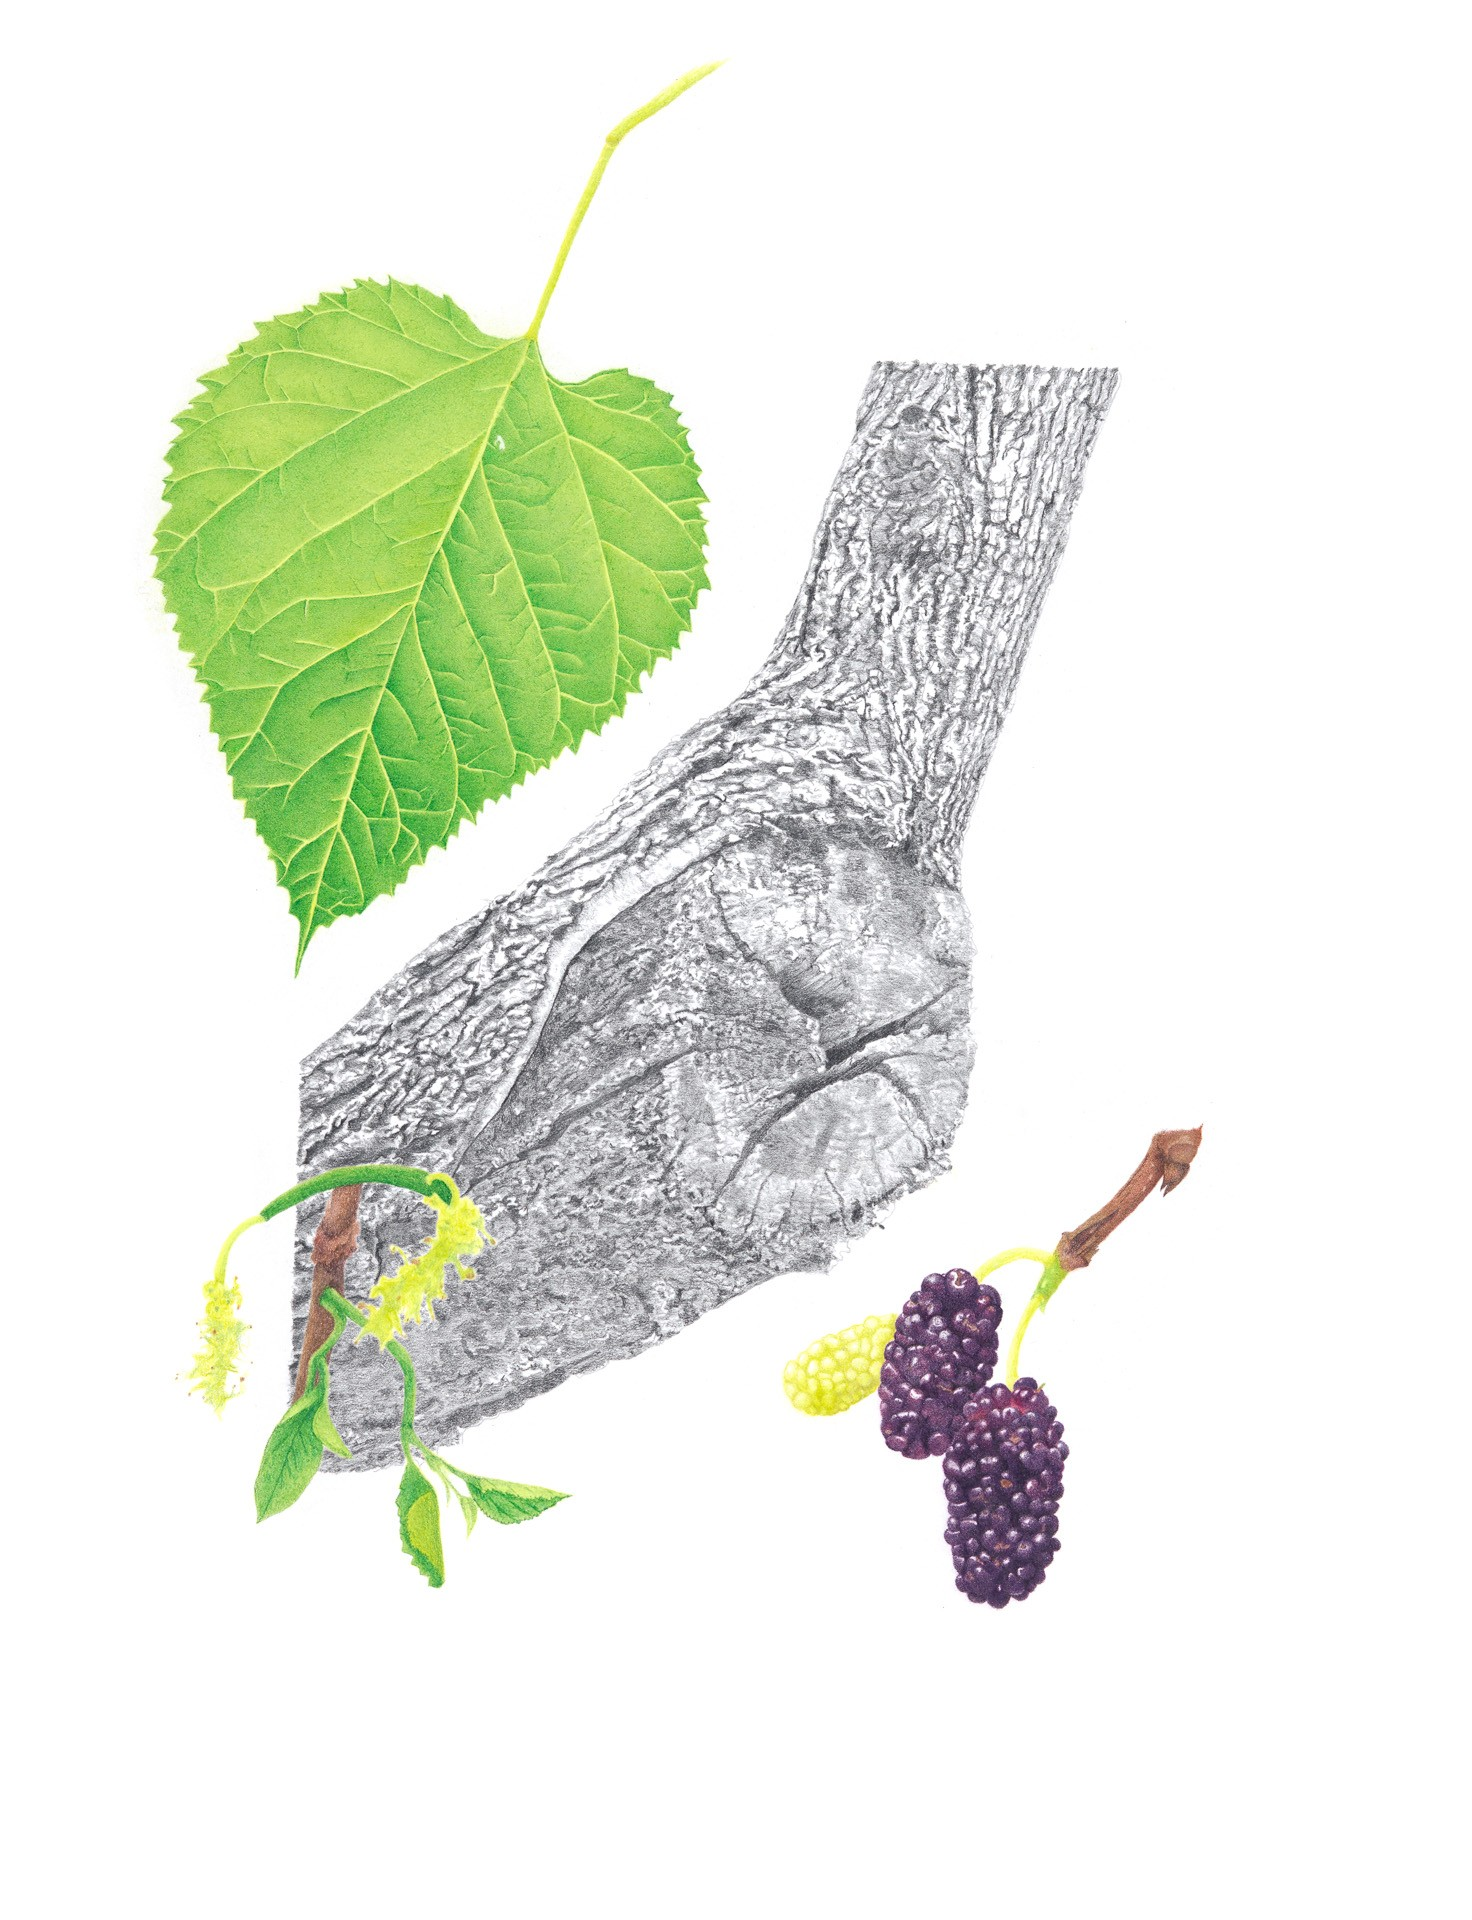 Red mulberry, Morus rubra, Gicleè print of colored pencil and graphite by Autumn Secrest